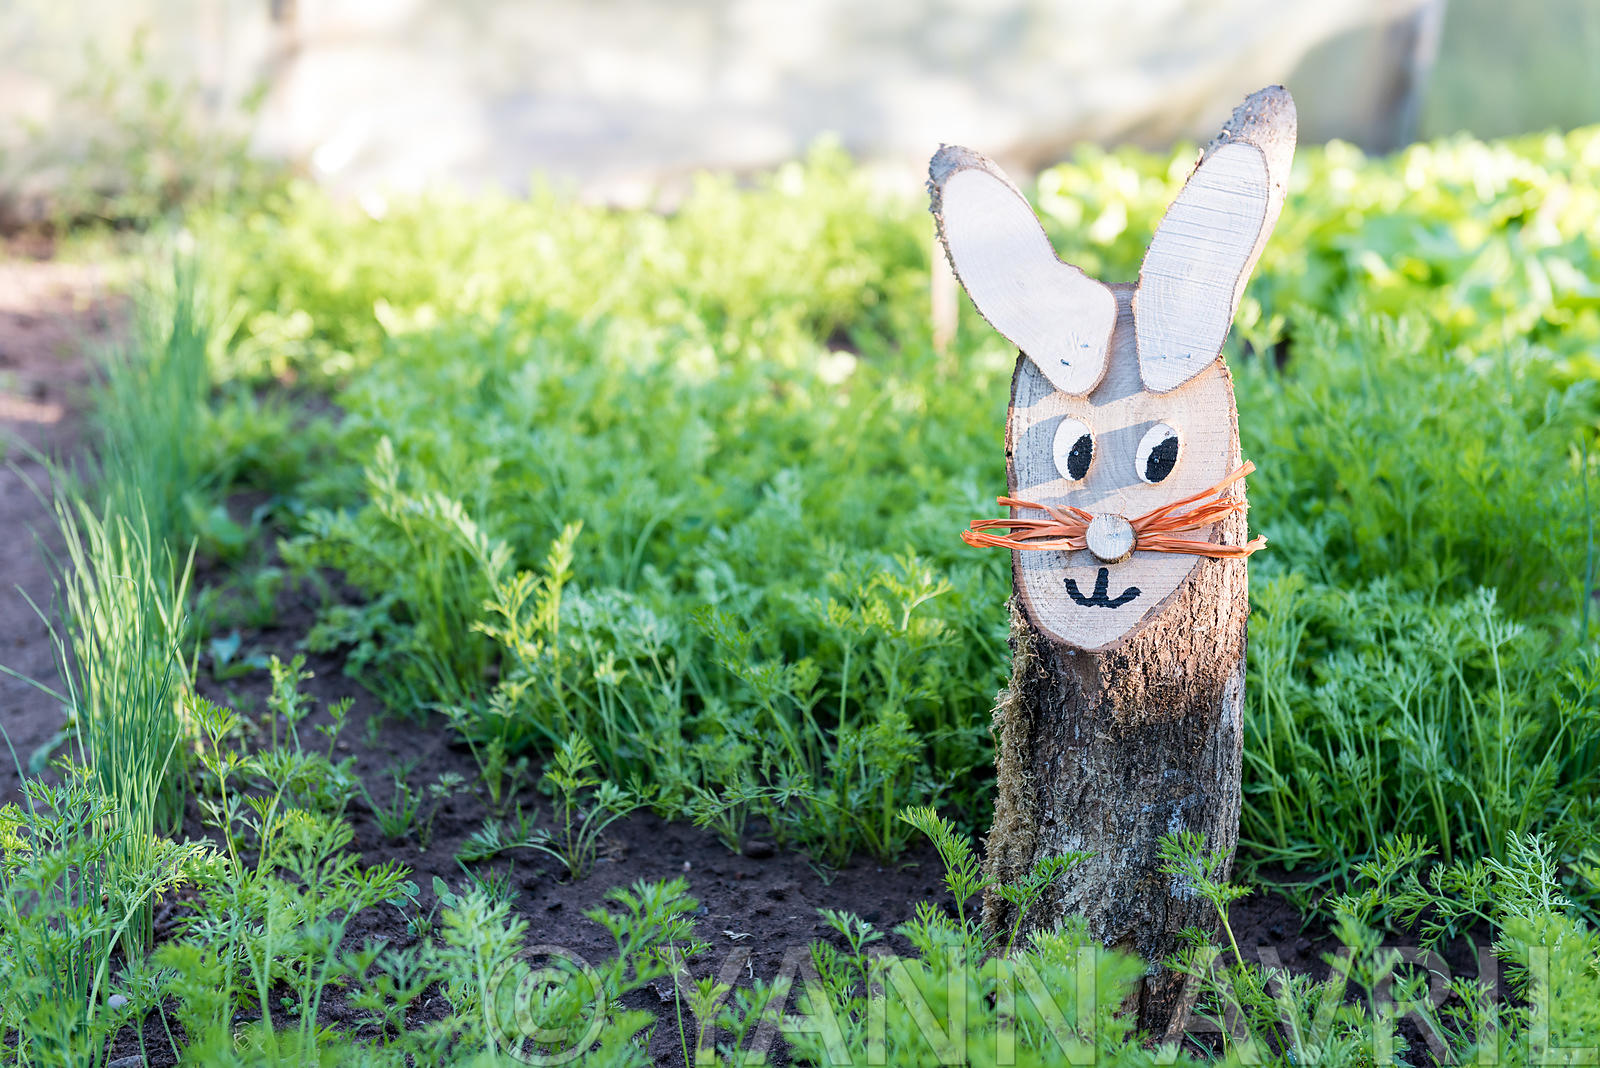 Daucus carota-Ornamental wooden Rabbit in a kitchen garden